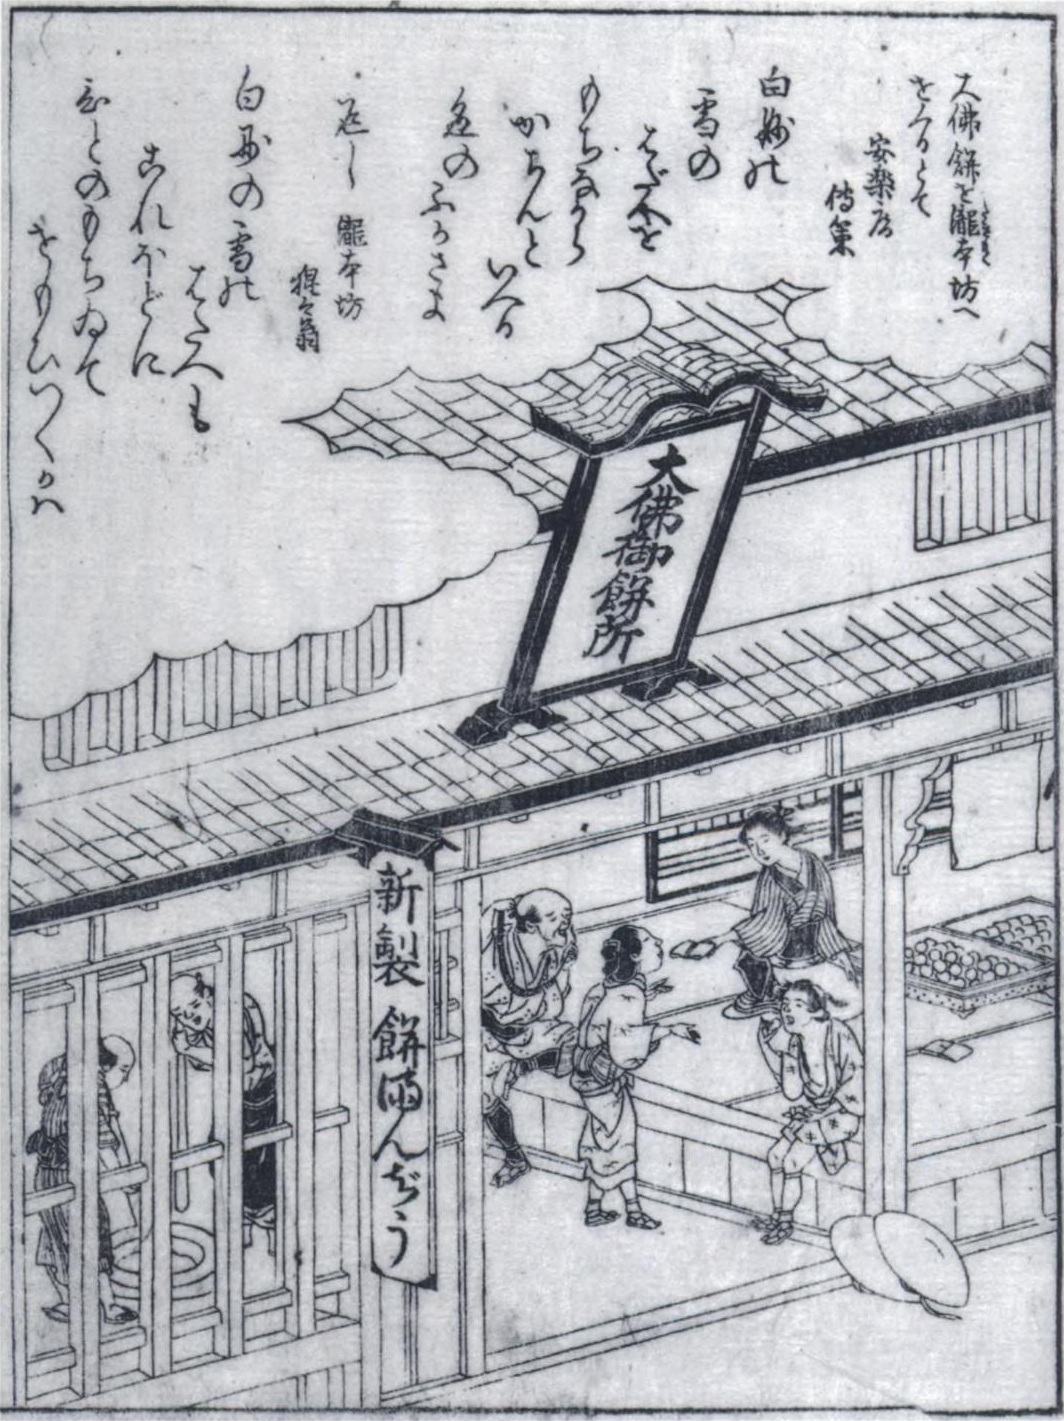 """A Japanese vendor selling sweets in """"The Great Buddha Sweet Shop"""" from the Miyako meisho zue (1787)"""